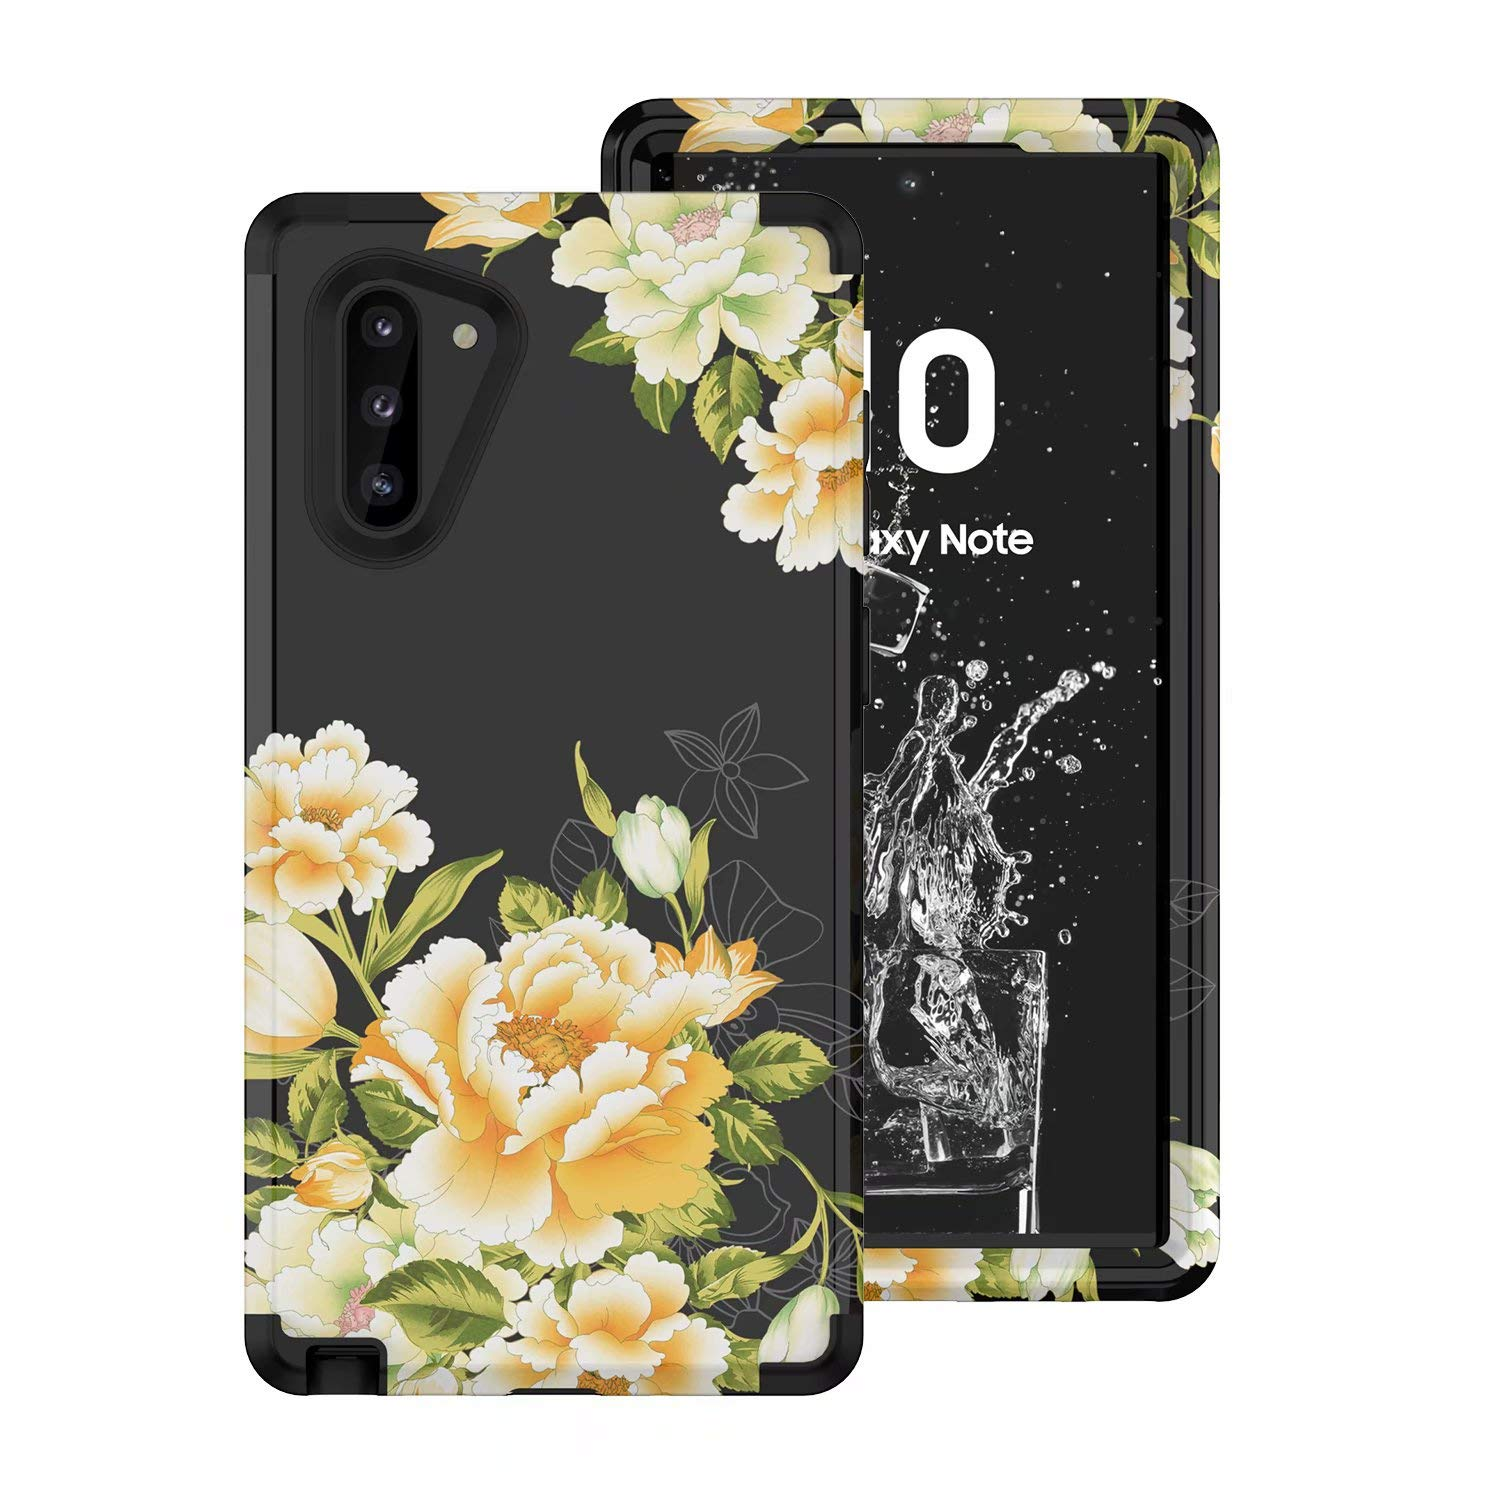 Tznzxm Galaxy Note 10 Case, Slim Fit Floral 3 in 1 Hybrid Hard PC Soft Rubber Heavy Duty Sturdy Armor Shockproof Defender Non-Slip Protective Back Case Cover for Samsung Galaxy Note 10 5G Black by Tznzxm